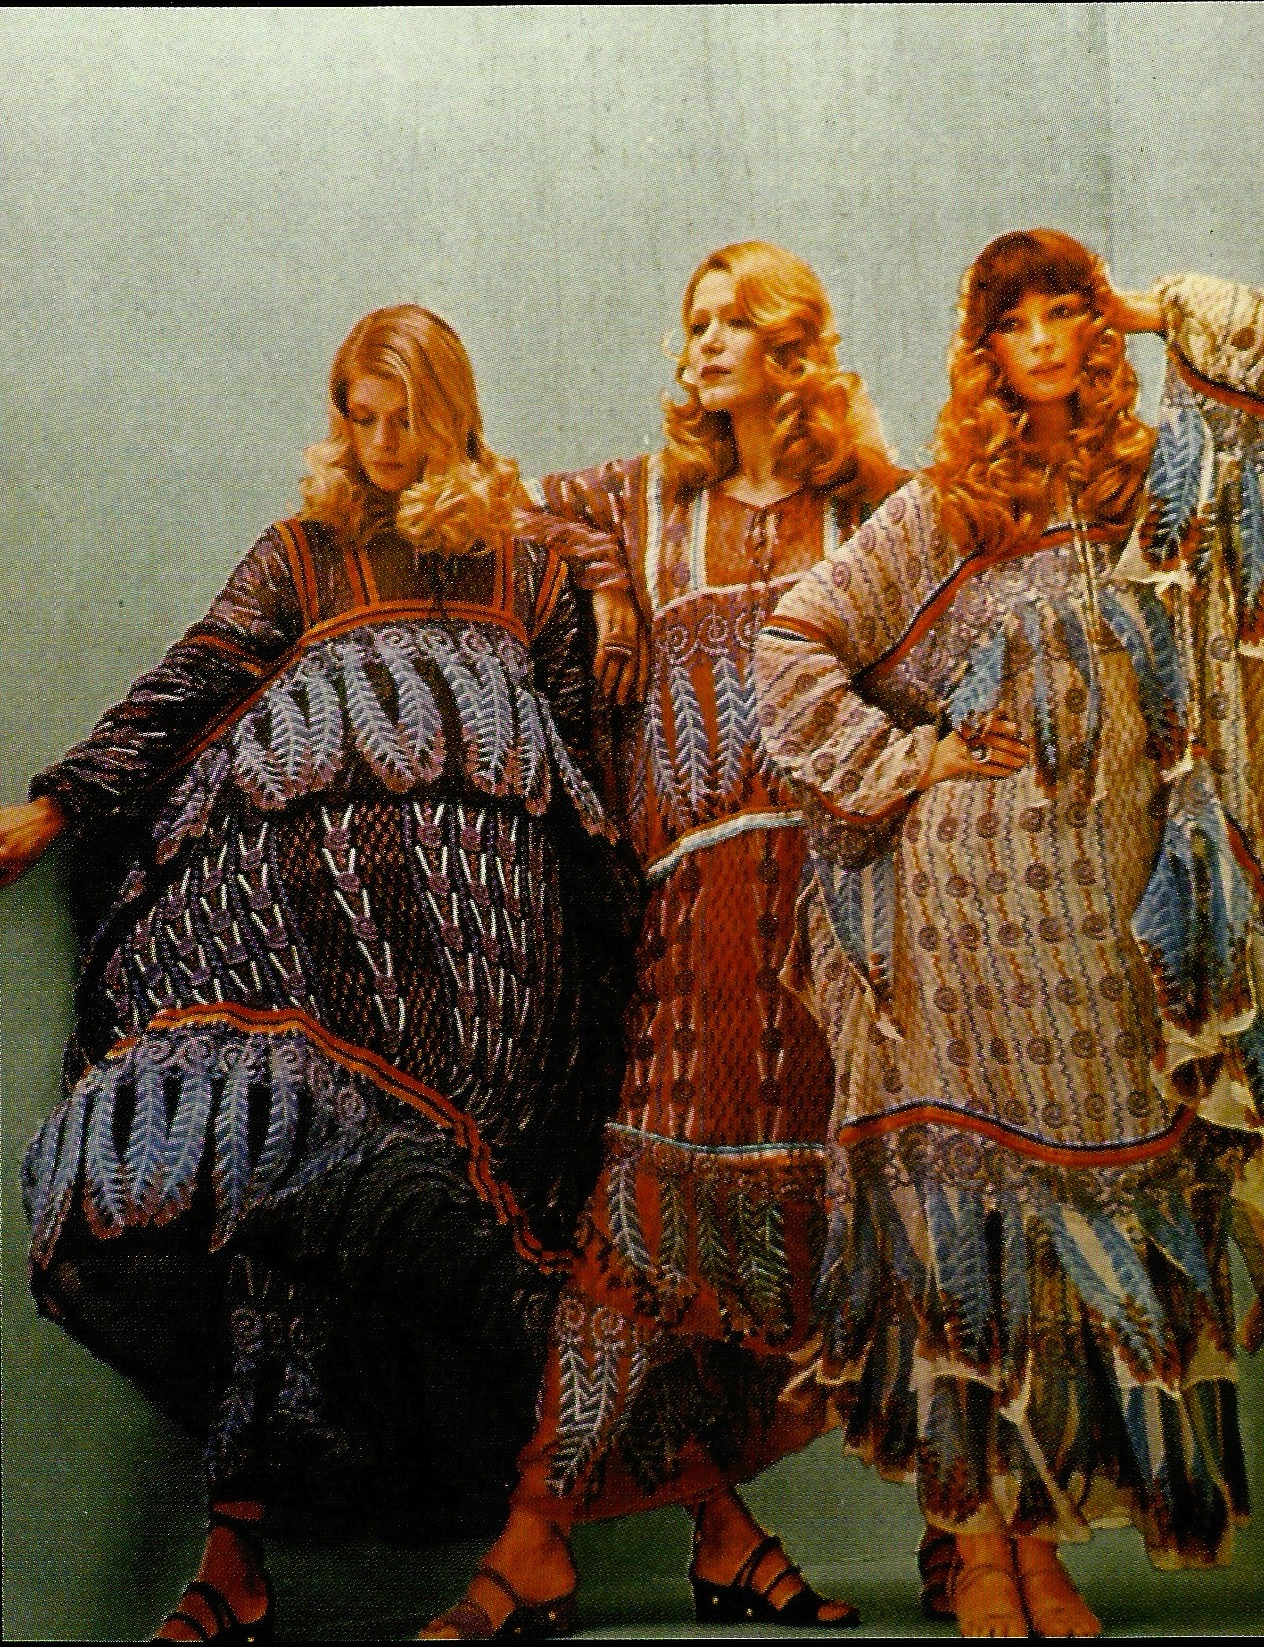 1970saesthetic:  Kaftans by Zandra Rhodes photographed by Norman Eales, 1970